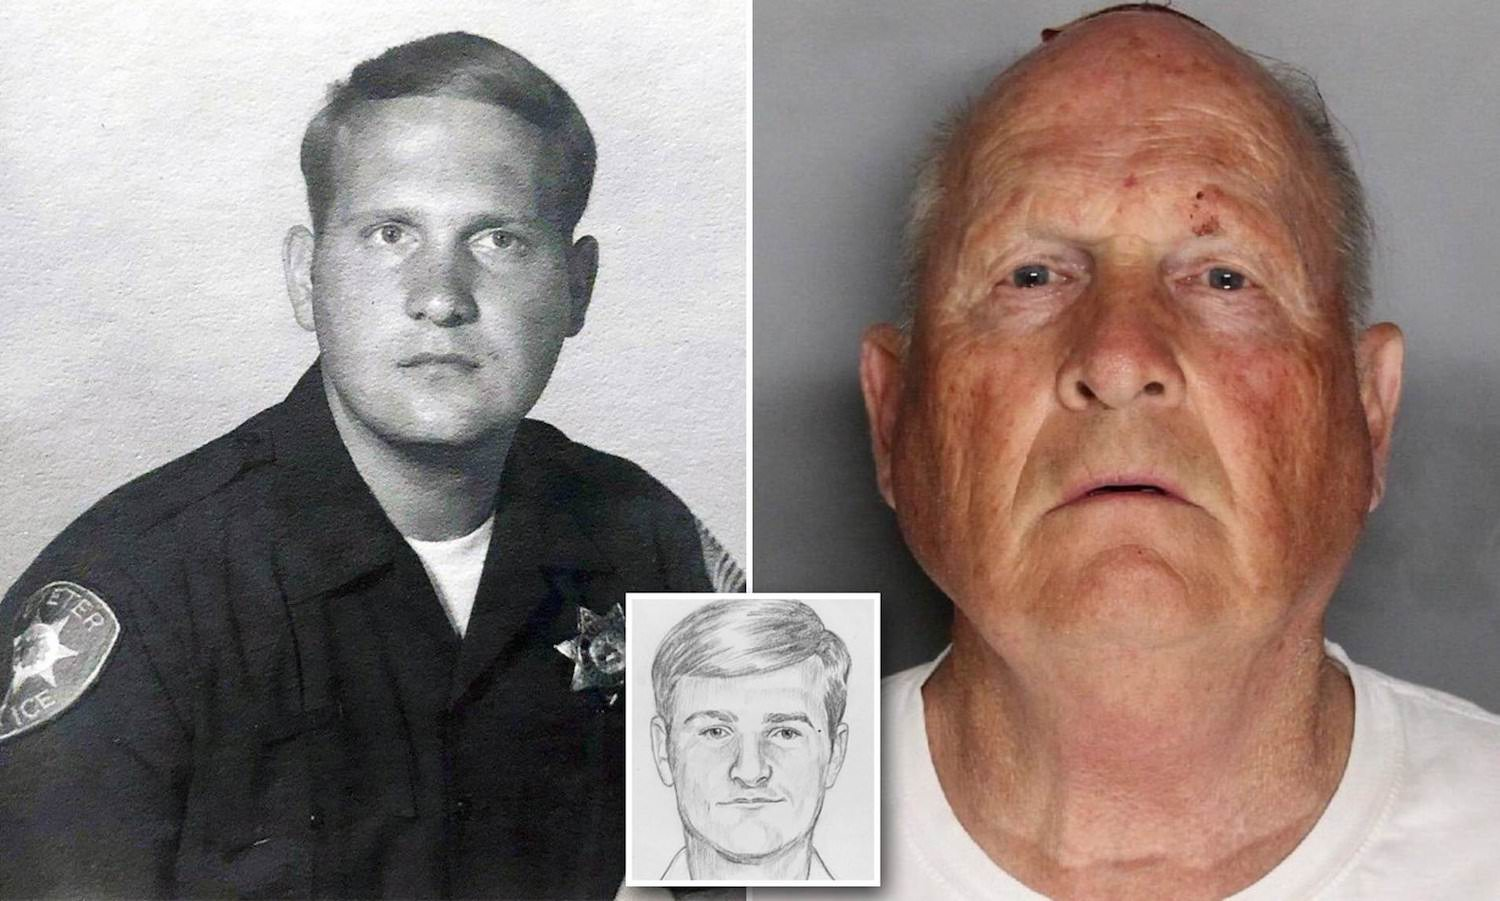 Golden State Killer was a police officer